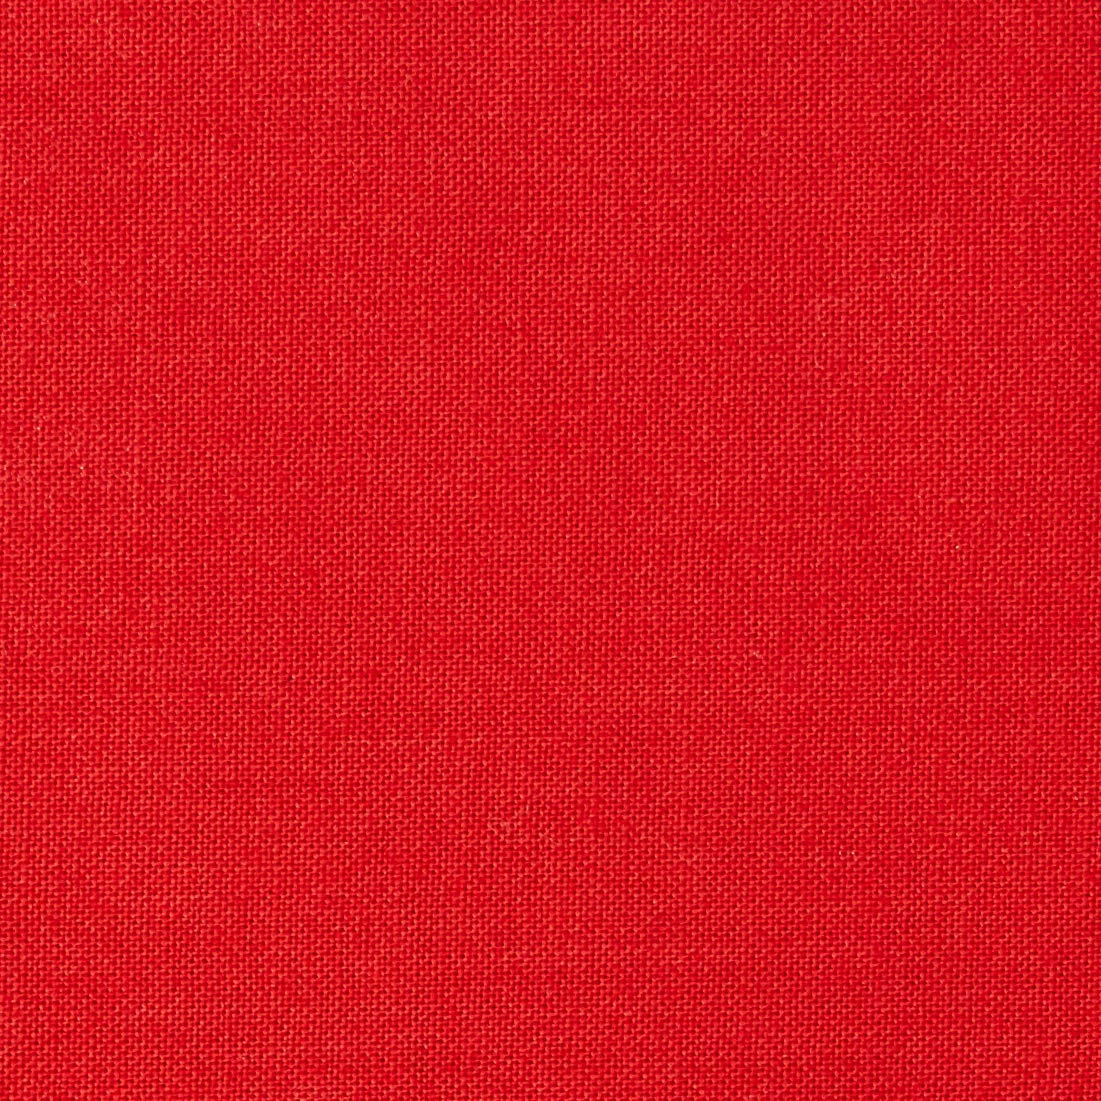 Riley Blake Designs 44'' Wide Confetti Cotton Solid Barn Red Fabric by the Yard